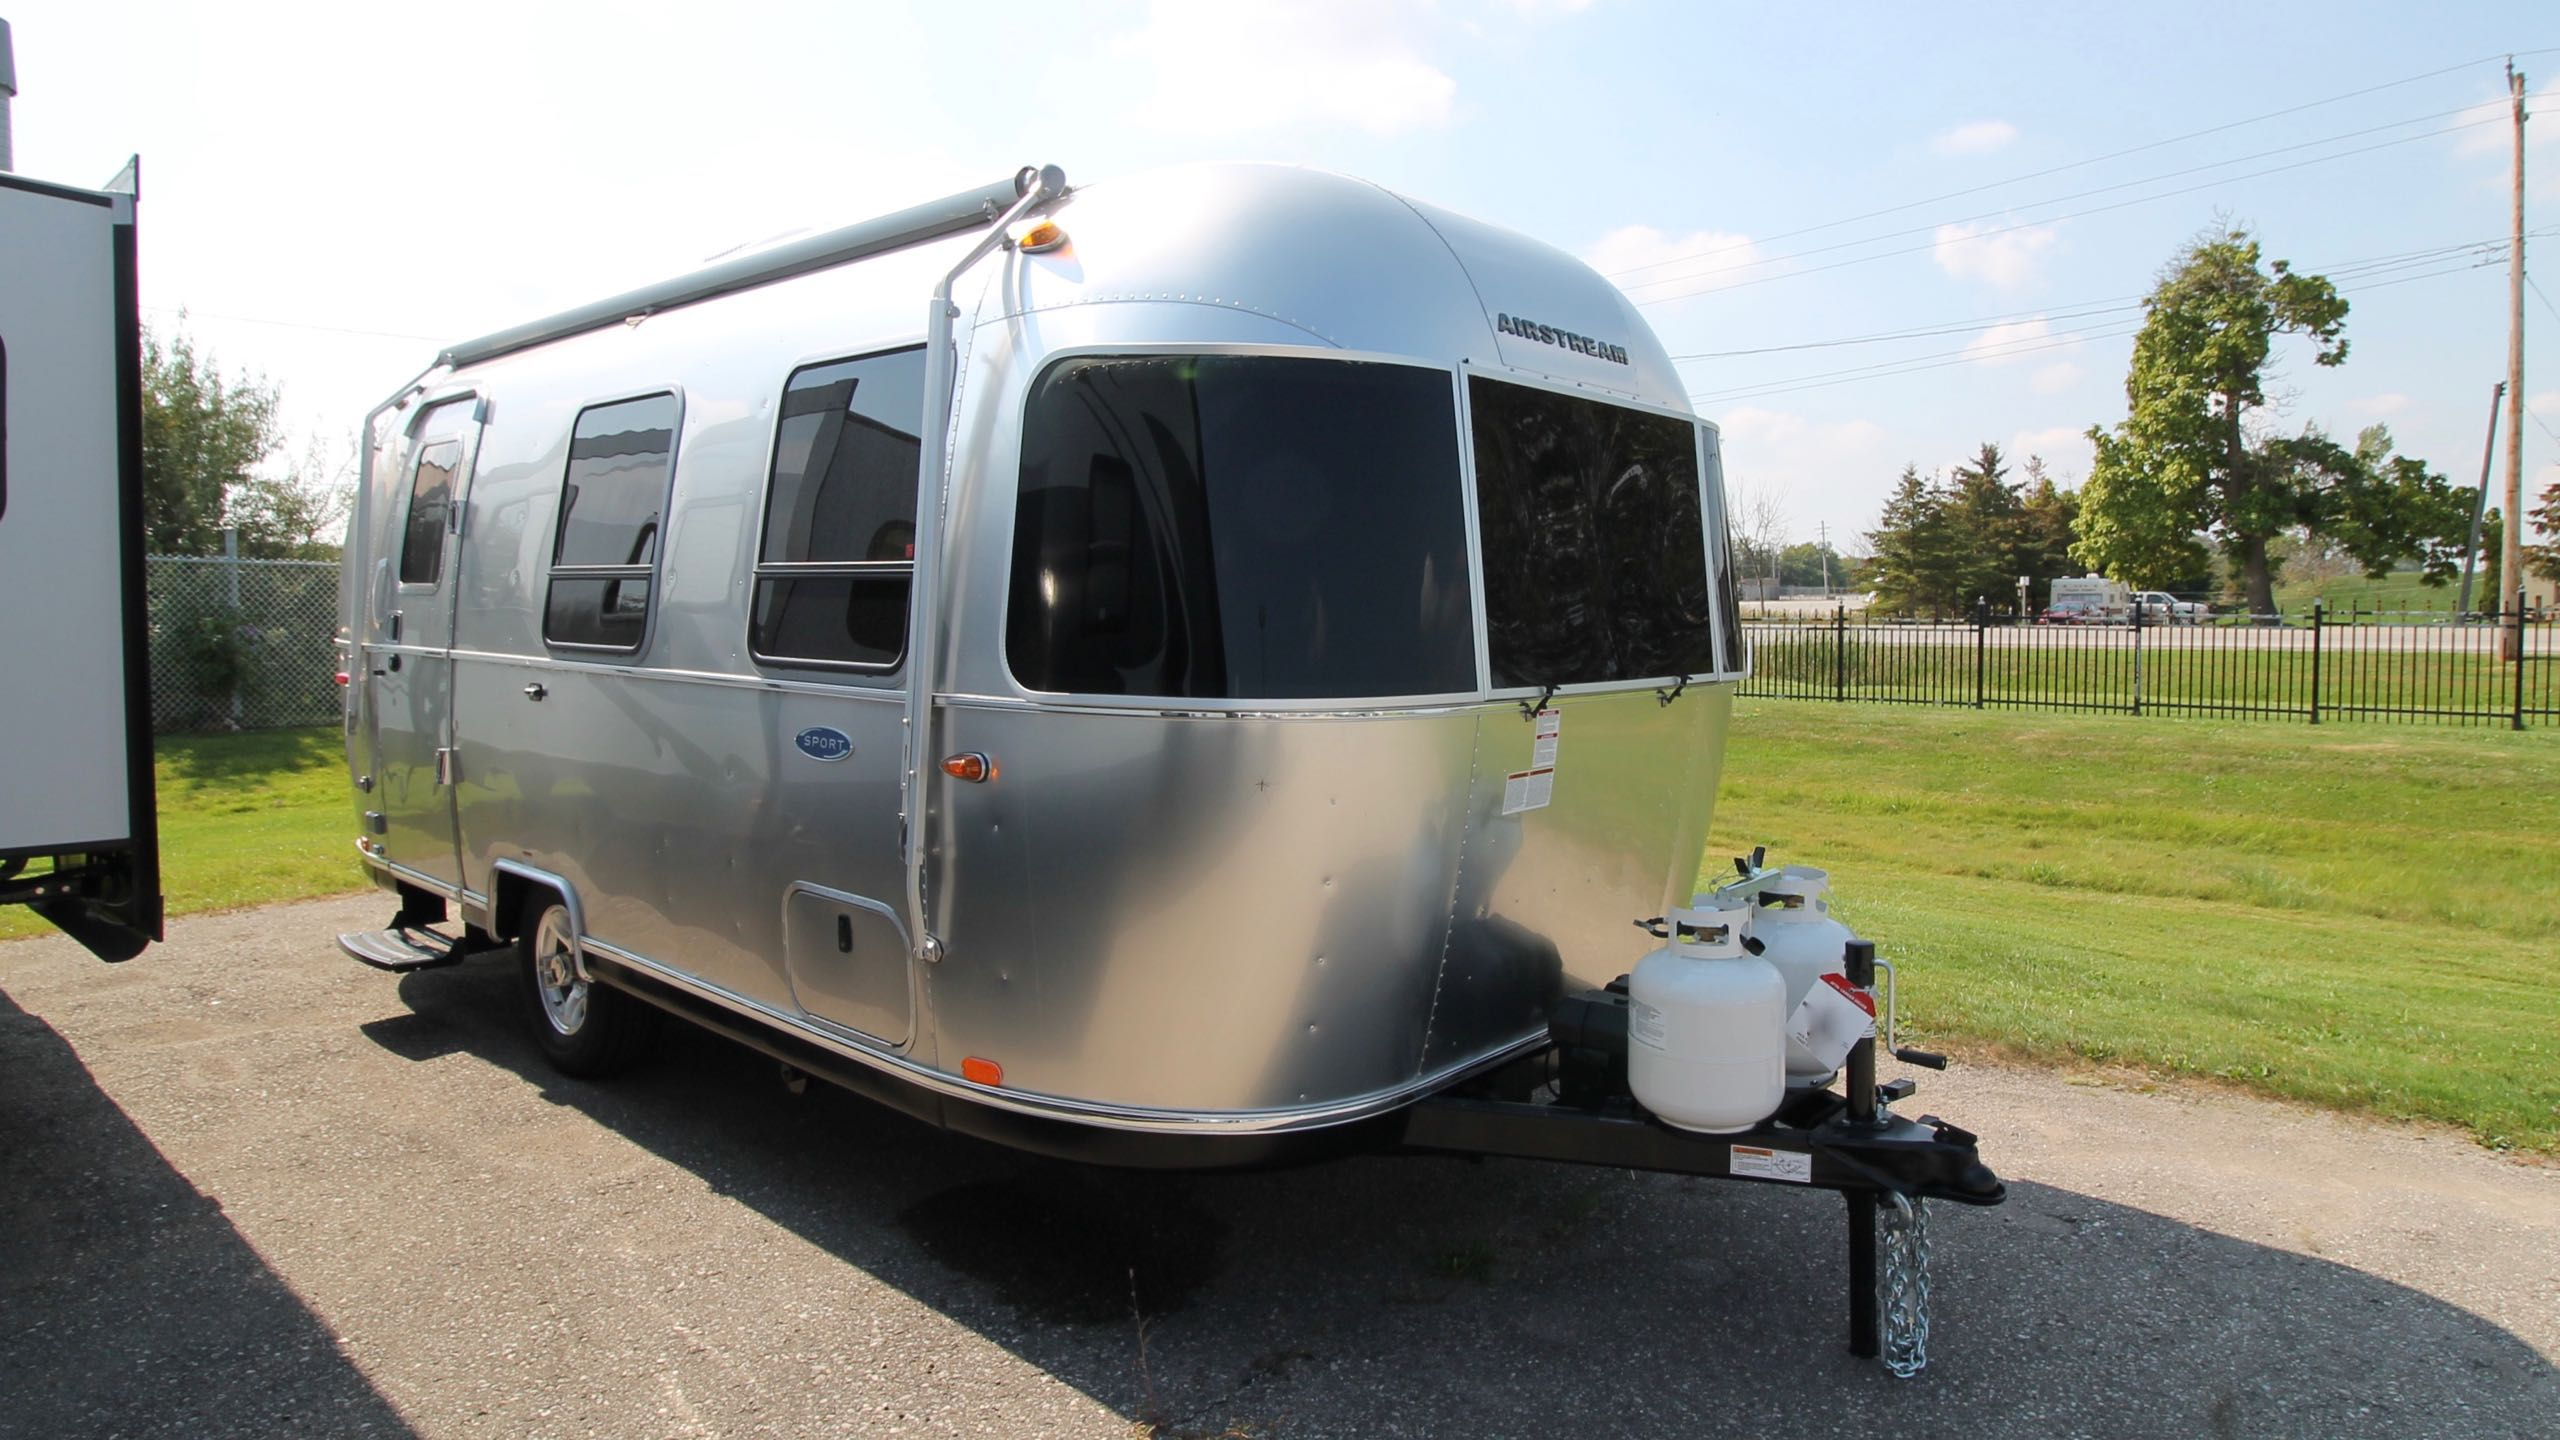 Sofa Bed Sale London Ontario 2019 Airstream Sport 22fb Airstream Of Ontario